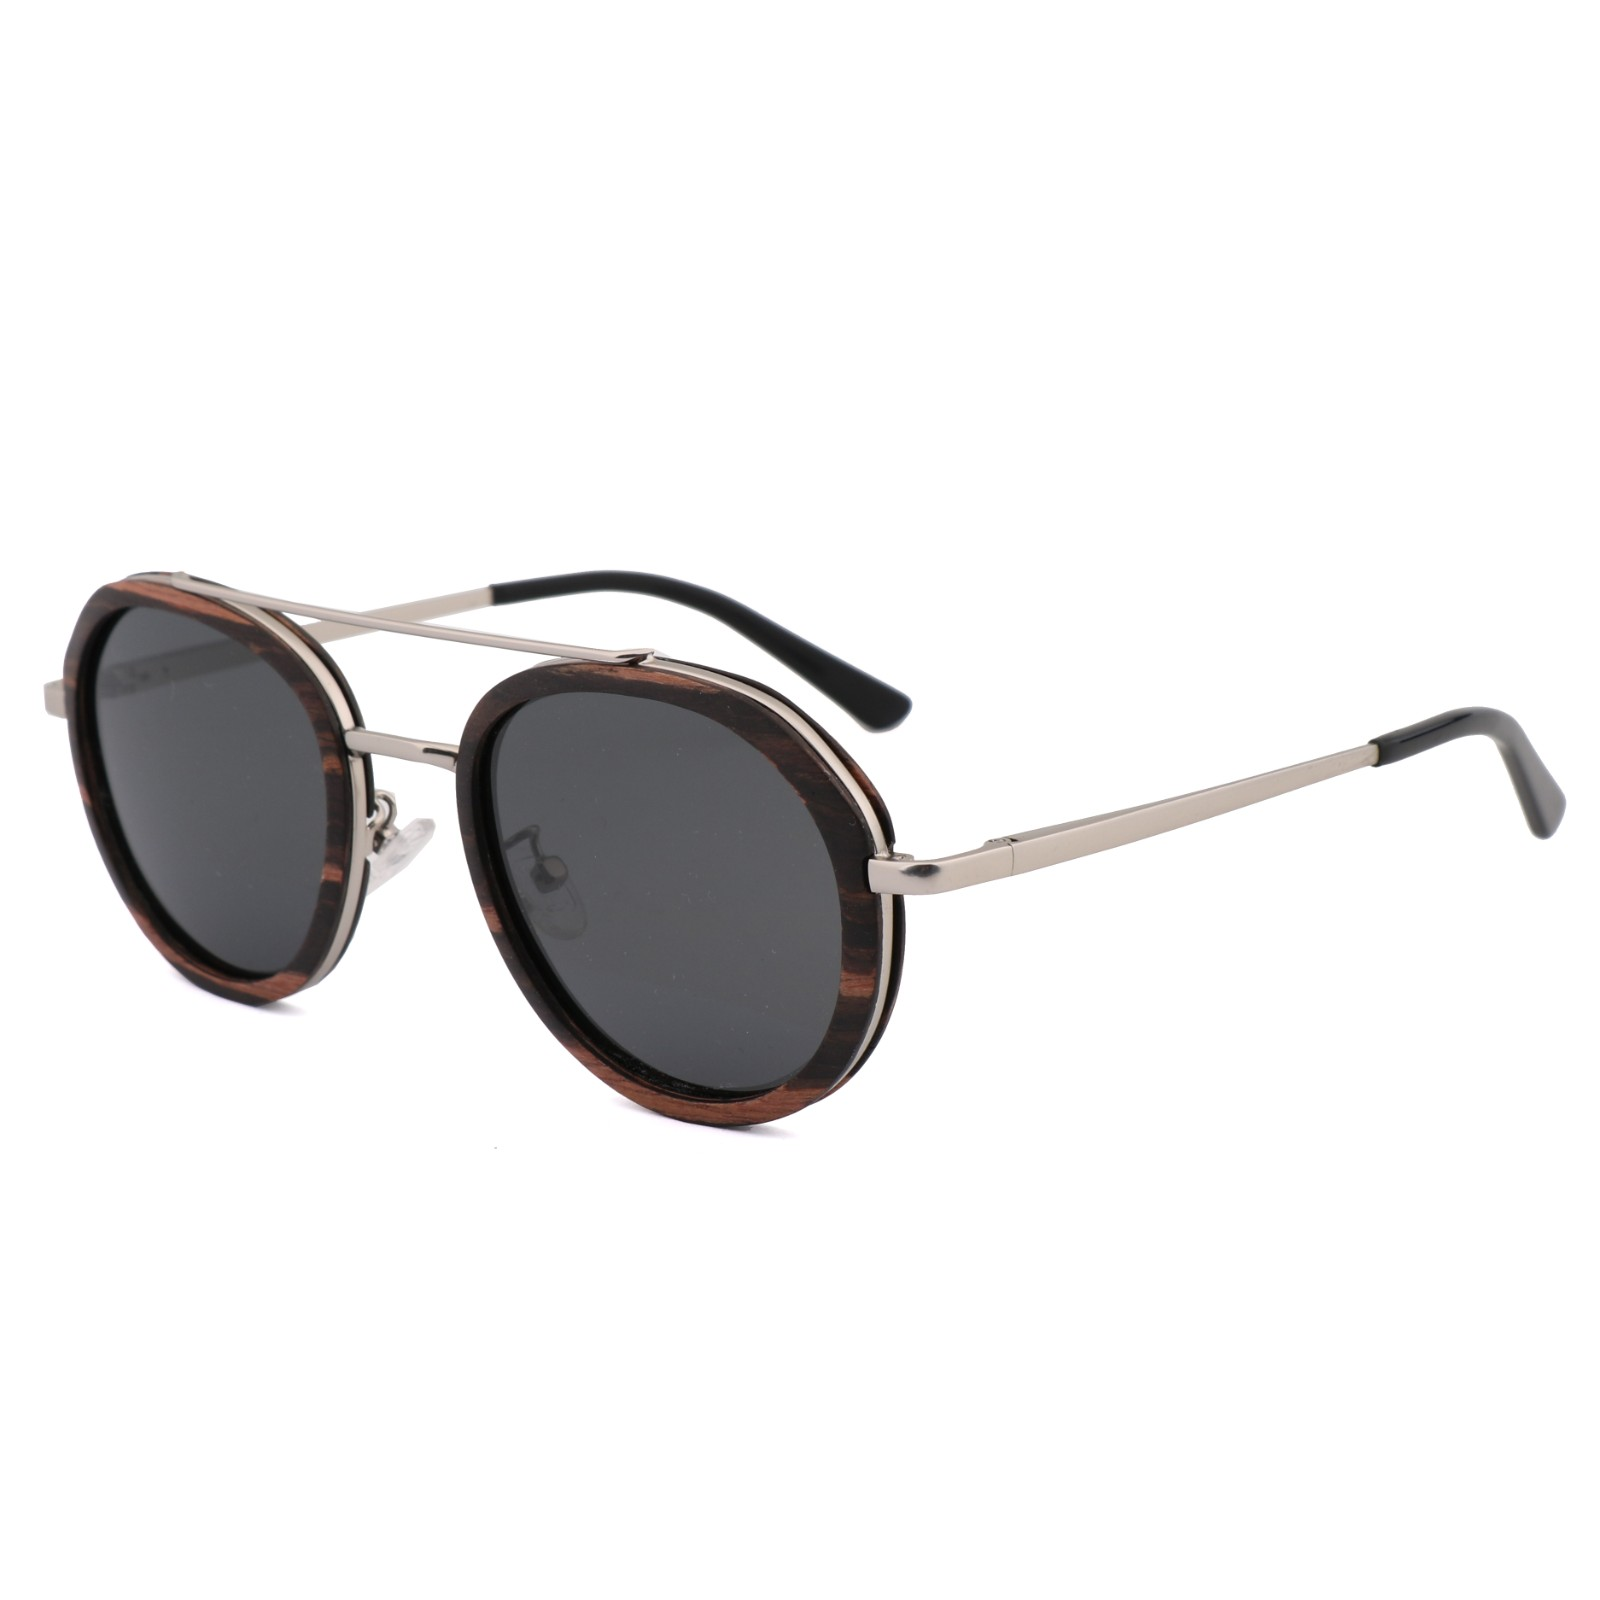 (RTS) SQ-56232 wooden sunglasses 2021 Factory hot sale bamboo glasses wooden sunglasses female sunglasses with high quality